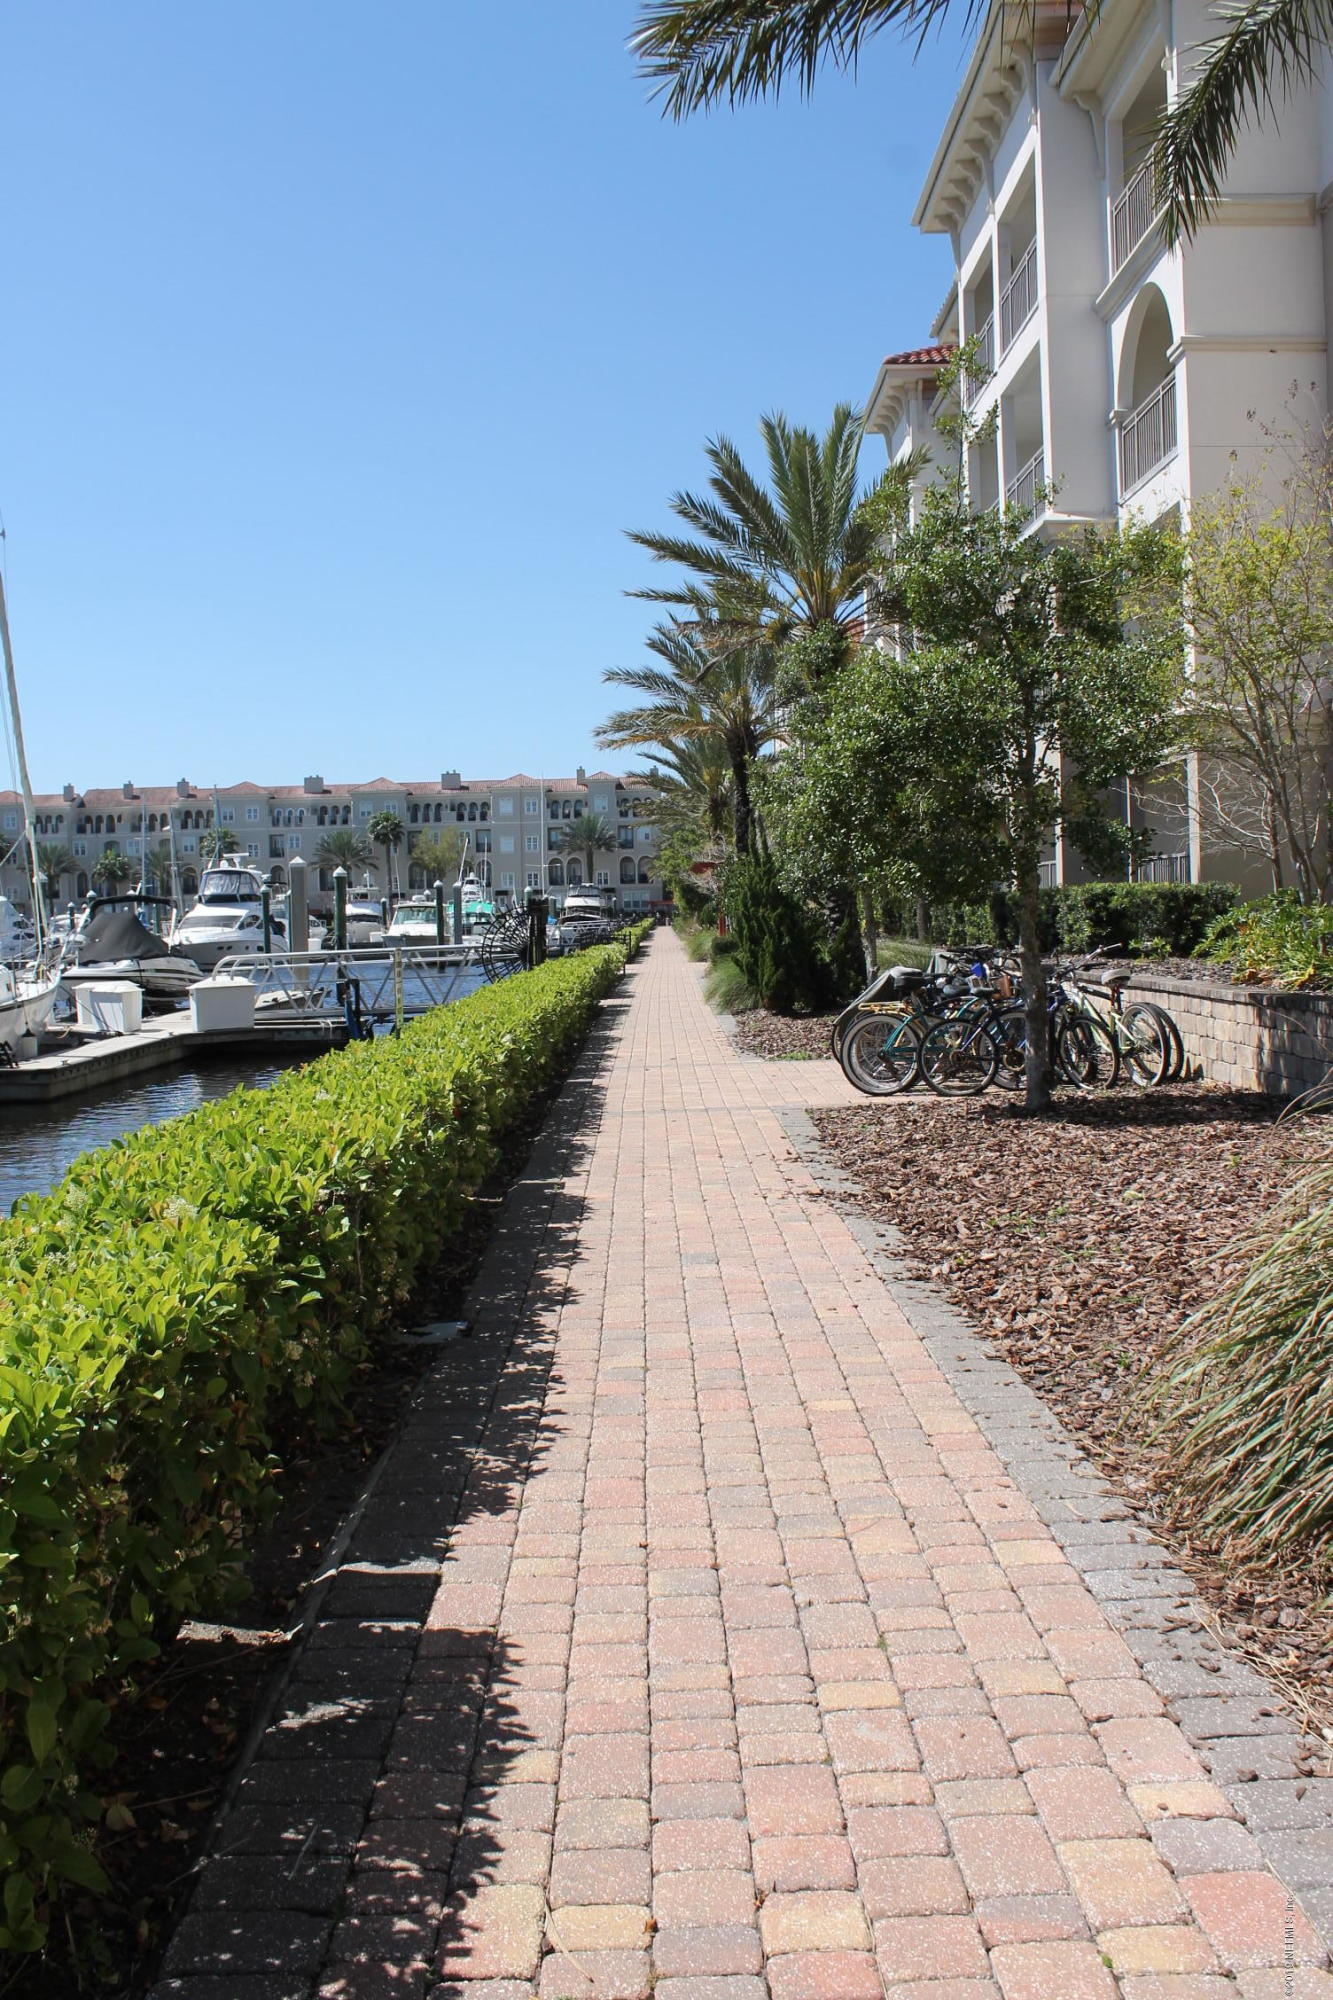 0 ATLANTIC, JACKSONVILLE, FLORIDA 32225, 1 Bedroom Bedrooms, ,1 BathroomBathrooms,Residential,For sale,ATLANTIC,1026058